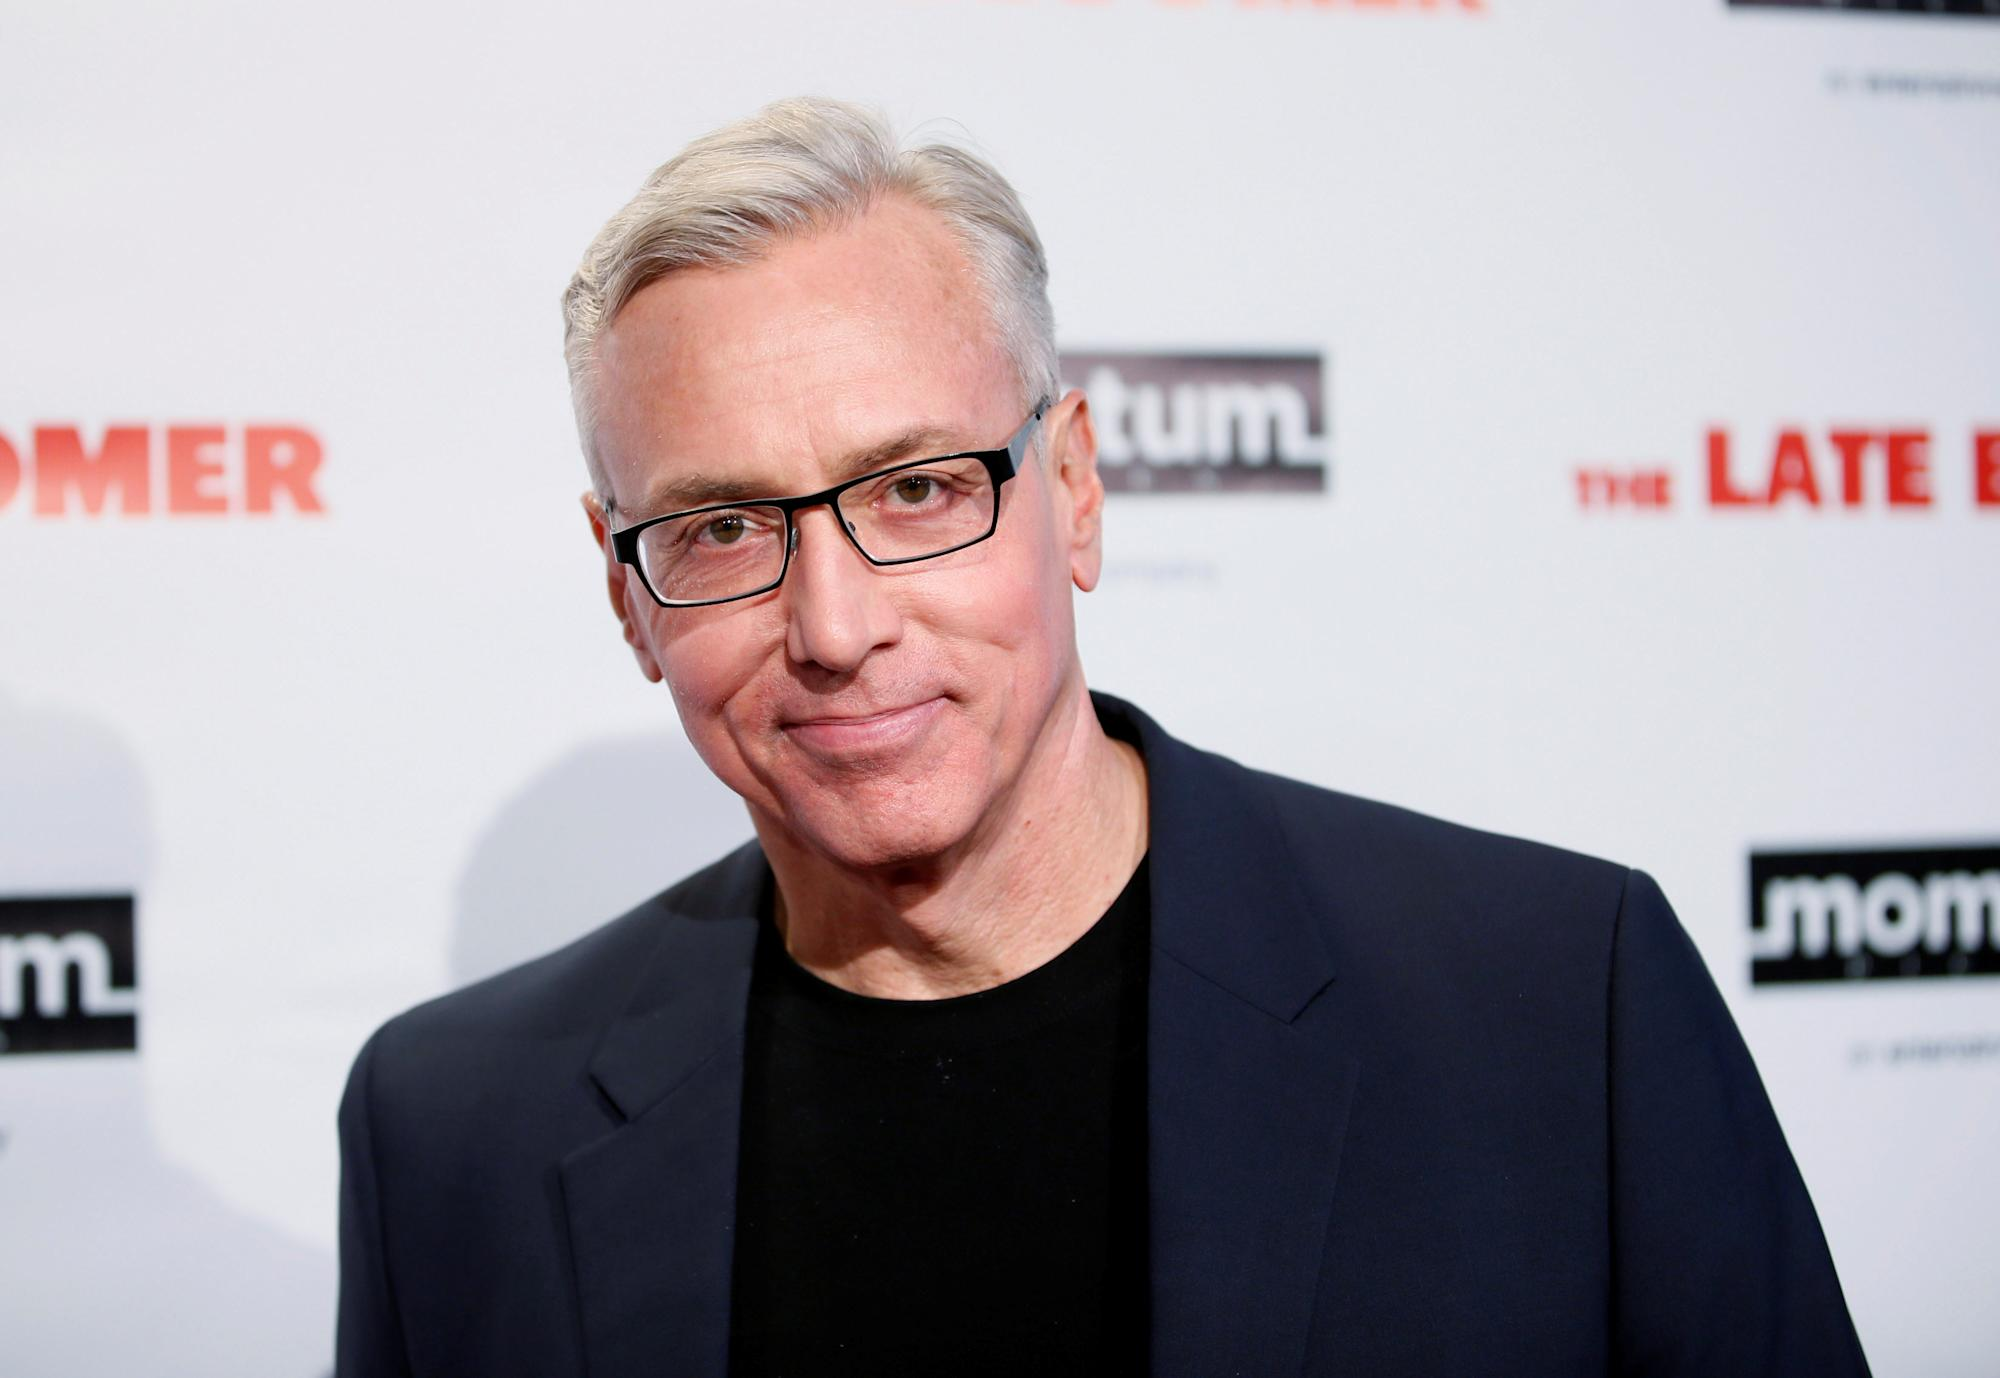 Dr. Drew reveals COVID-19 diagnosis months after apologizing for downplaying coronavirus - Yahoo Entertainment